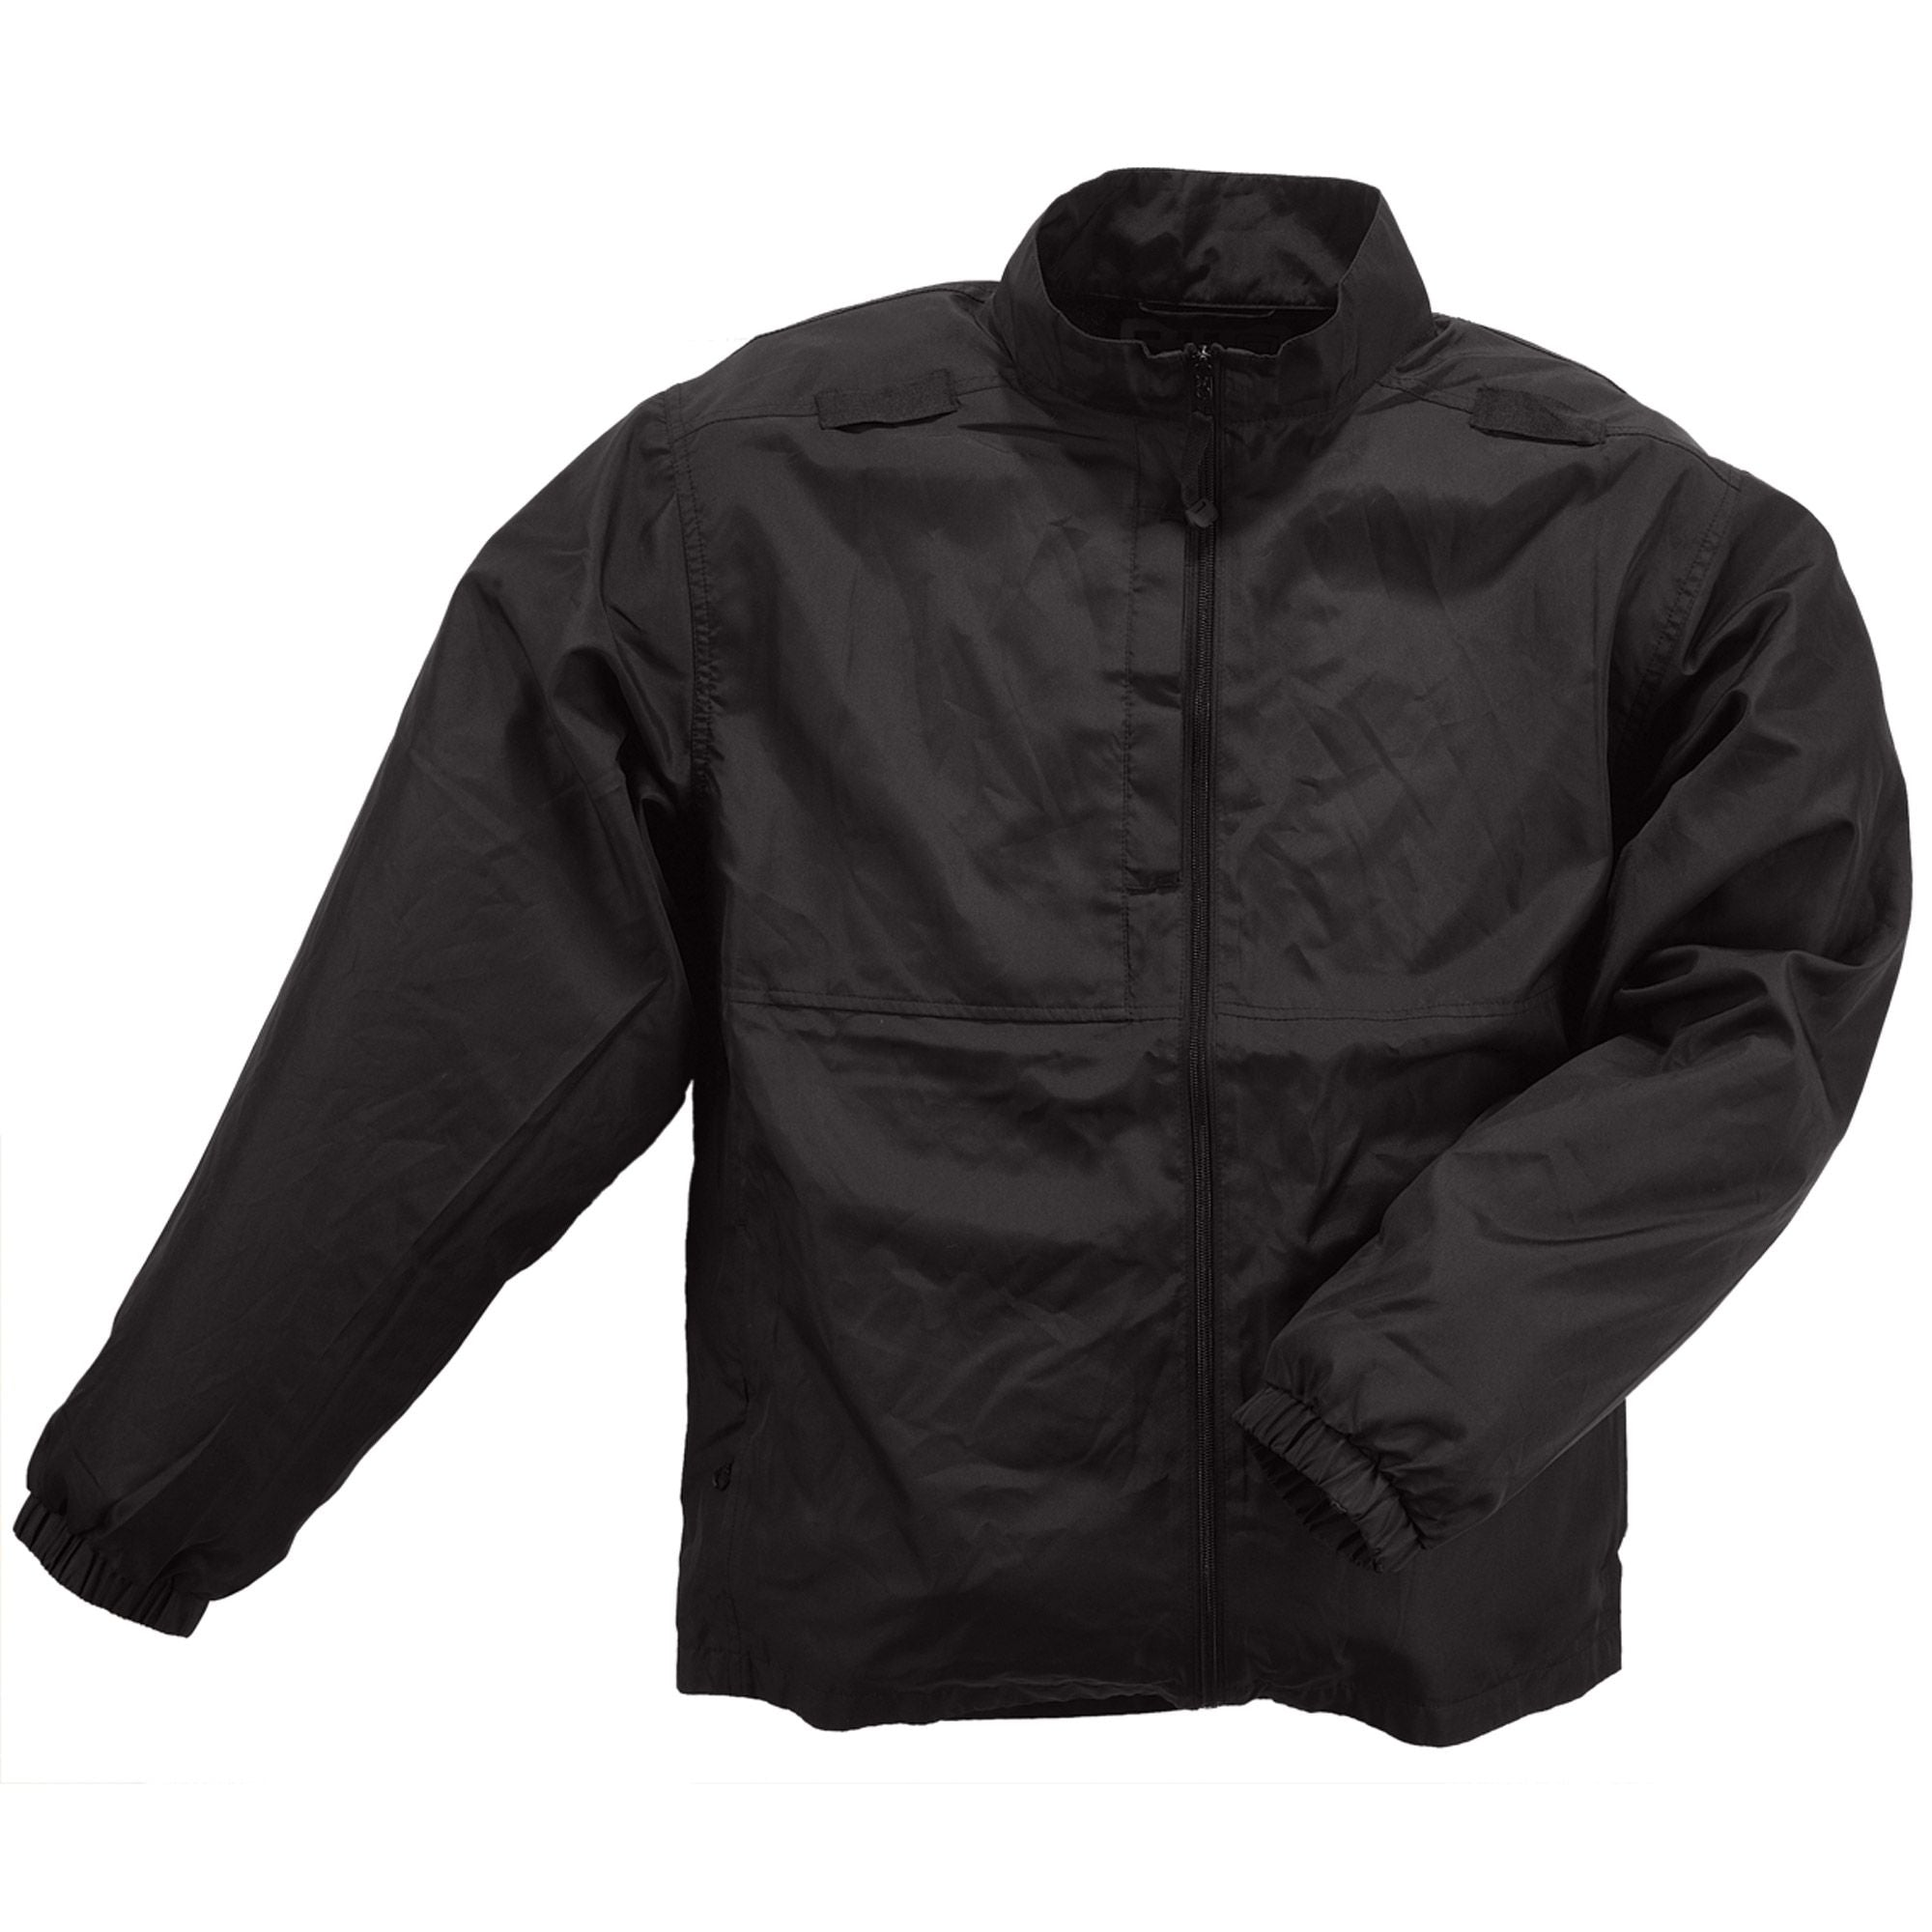 5.11 Lightweight Tactical Packable Jacket - red-diamond-uniform-police-supply